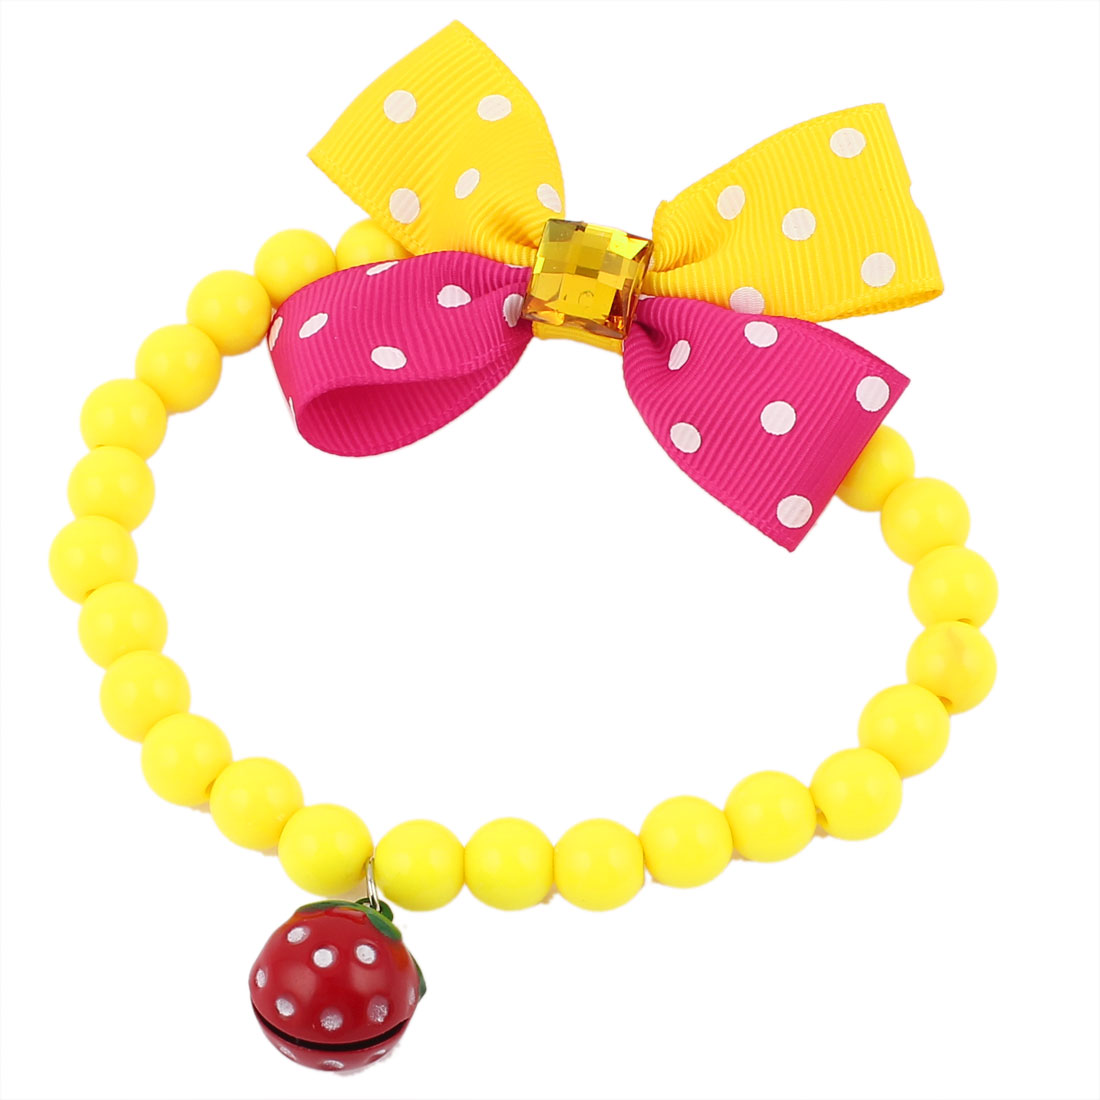 Faux Crystal Bowtie Accent Pet Dog Plastic Beads Collar Necklace Yellow Fuchsia S